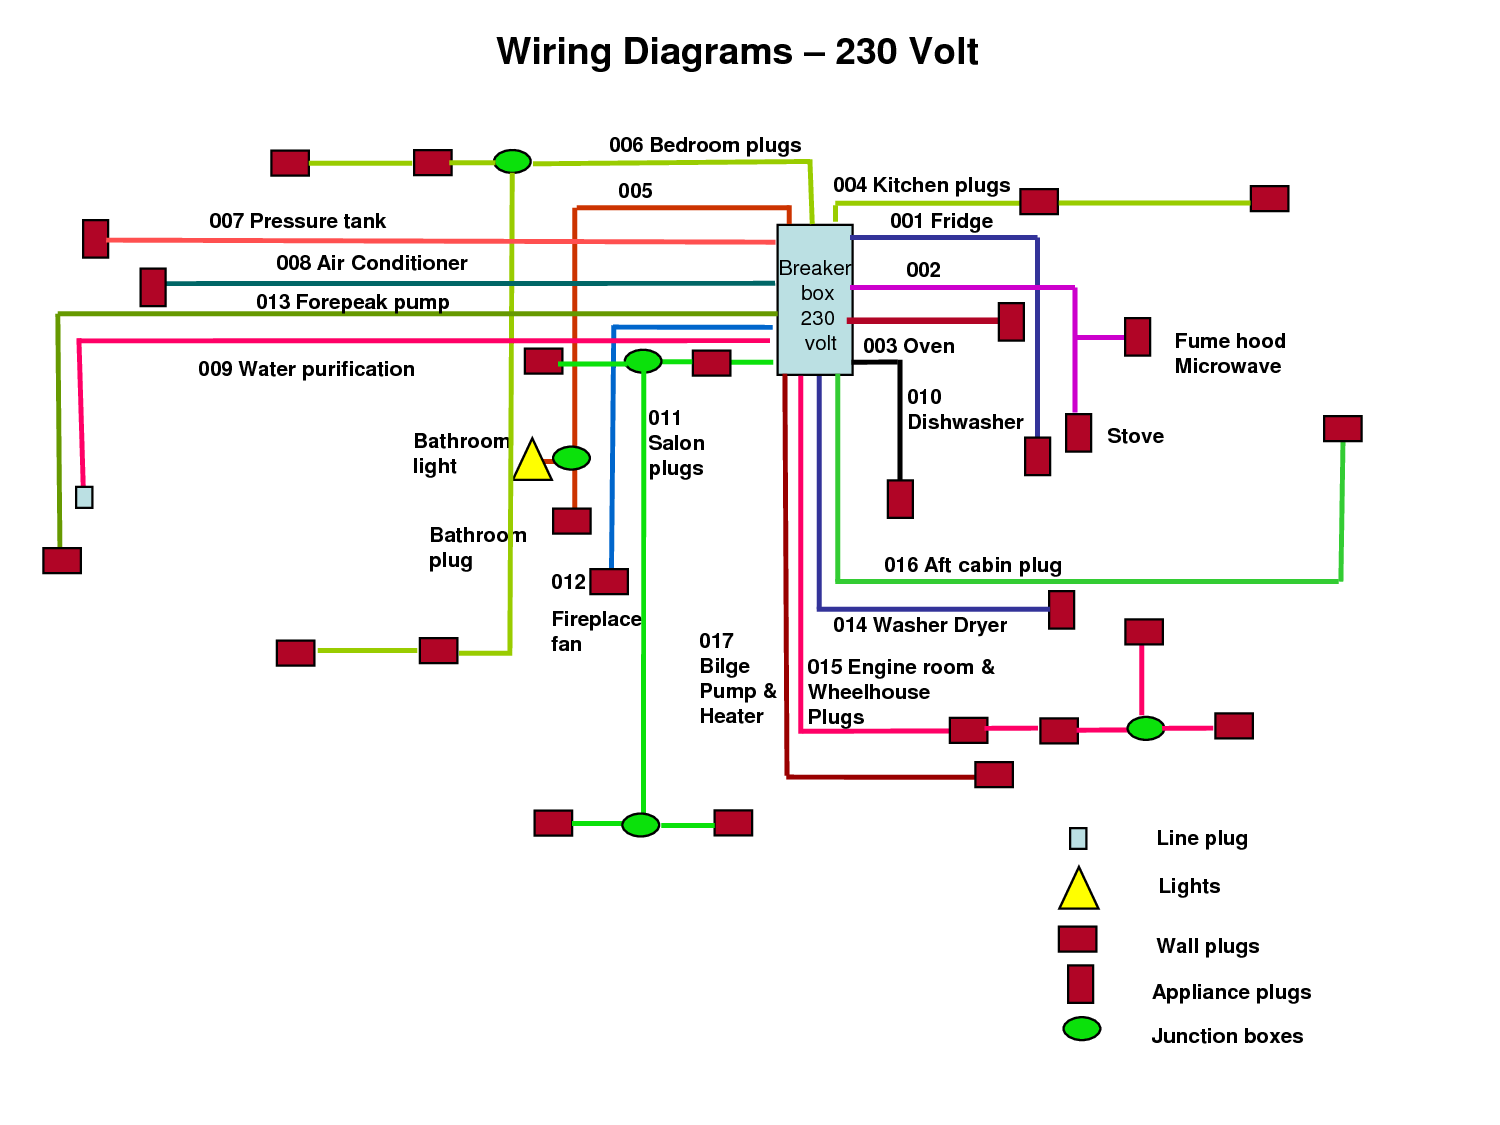 electric work: wiring diagram - 230 volt home electrical wiring diagrams volts 230 #1